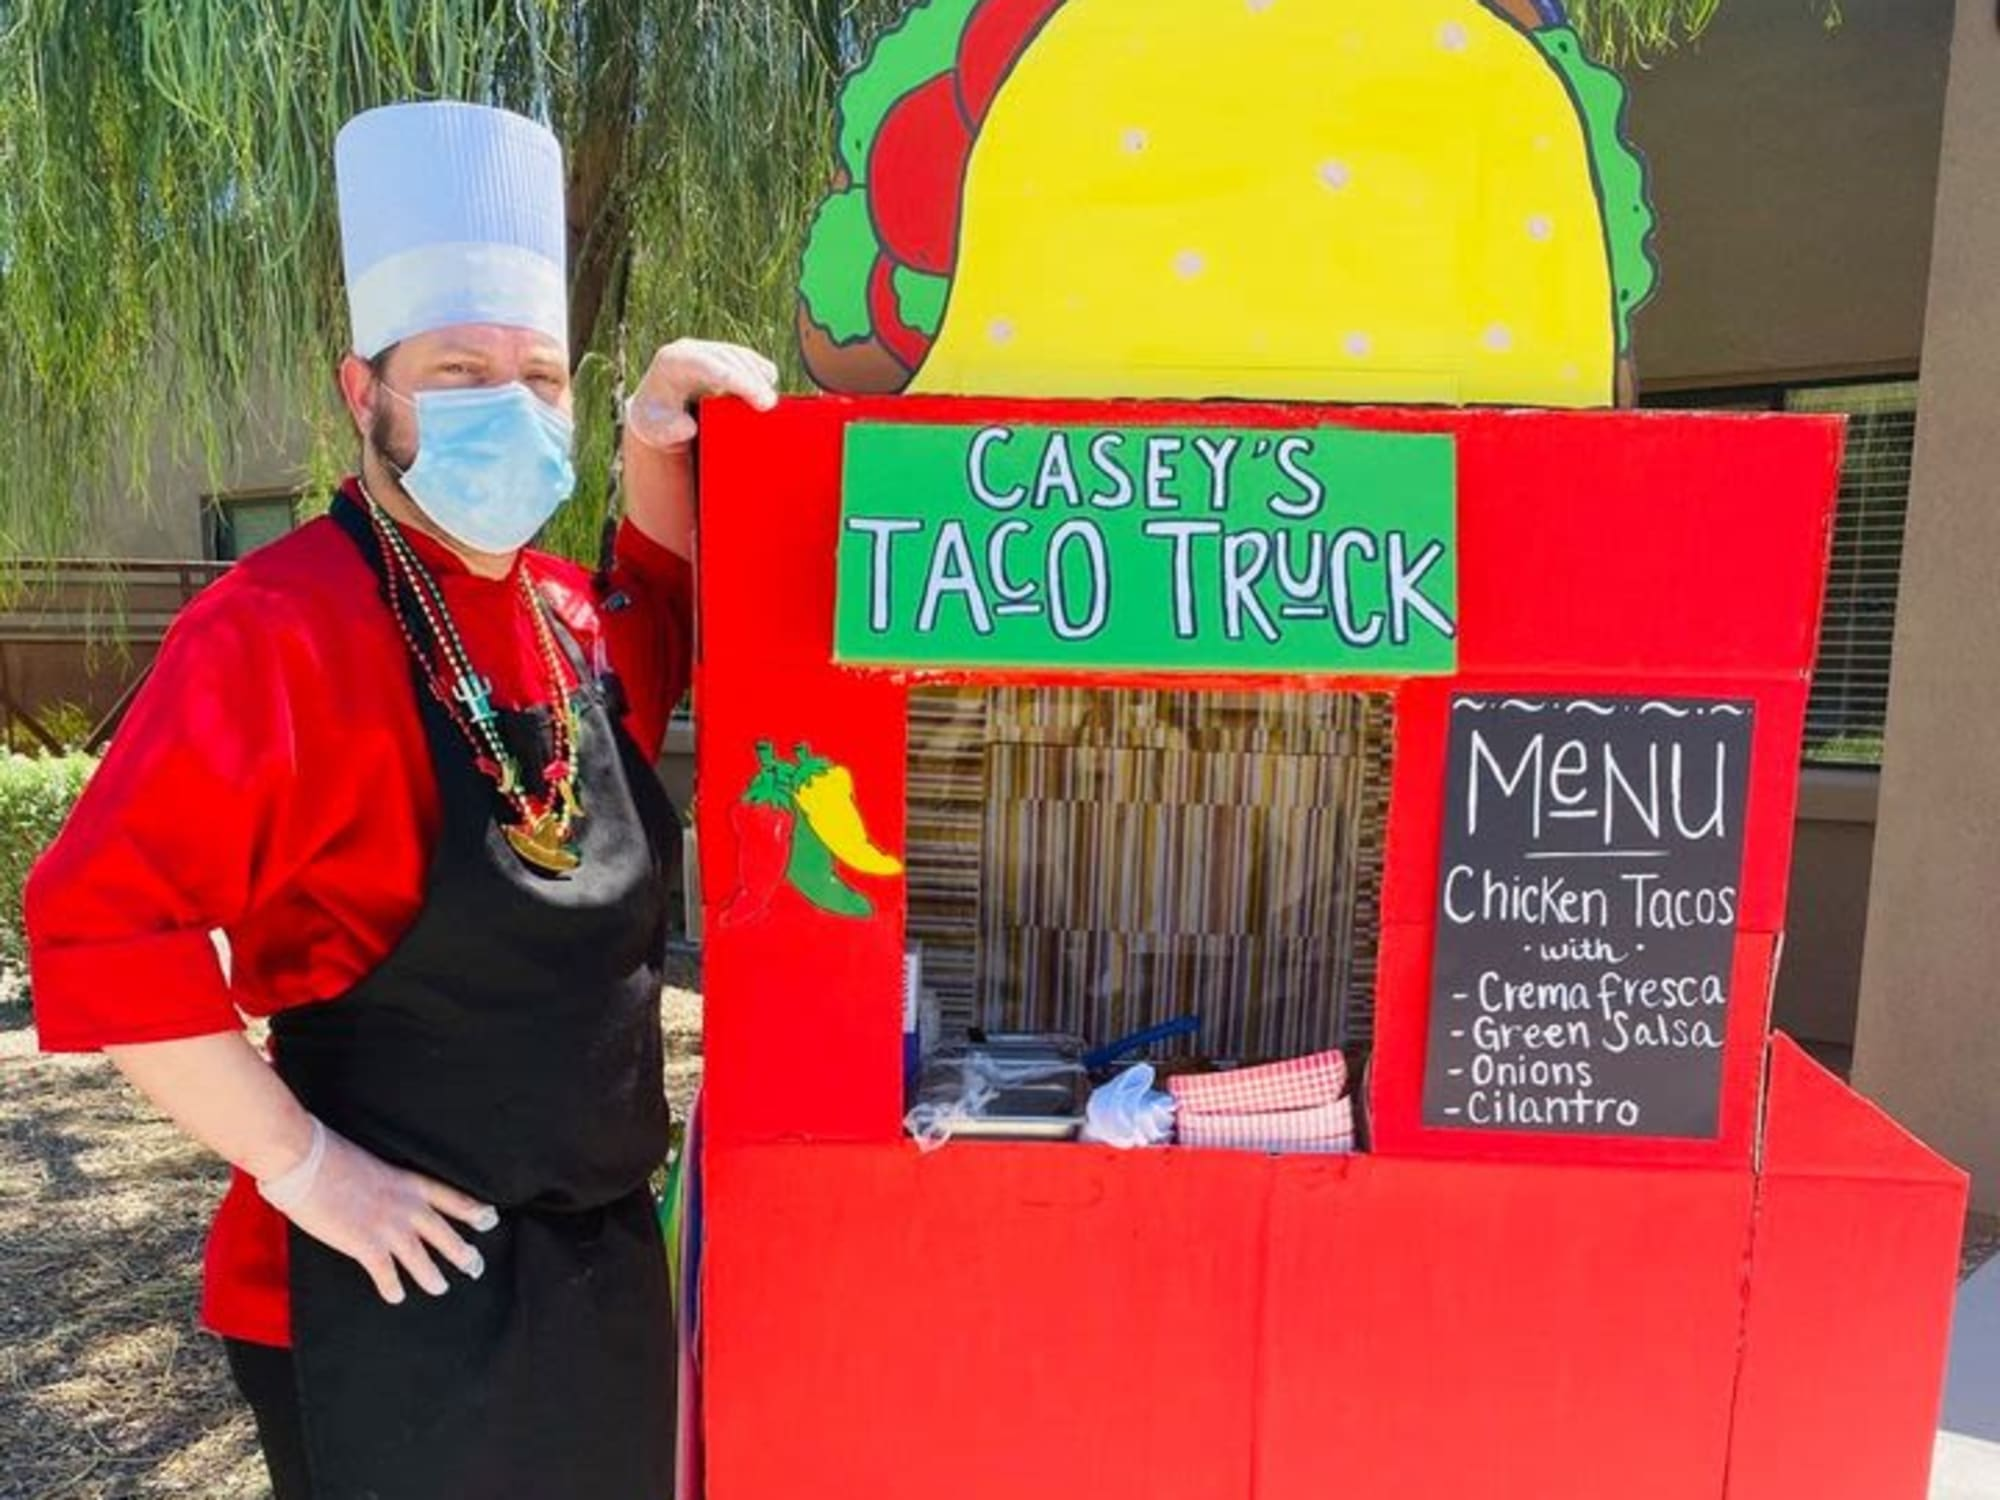 Taco truck stand at Hacienda Del Rey in Litchfield Park, AZ